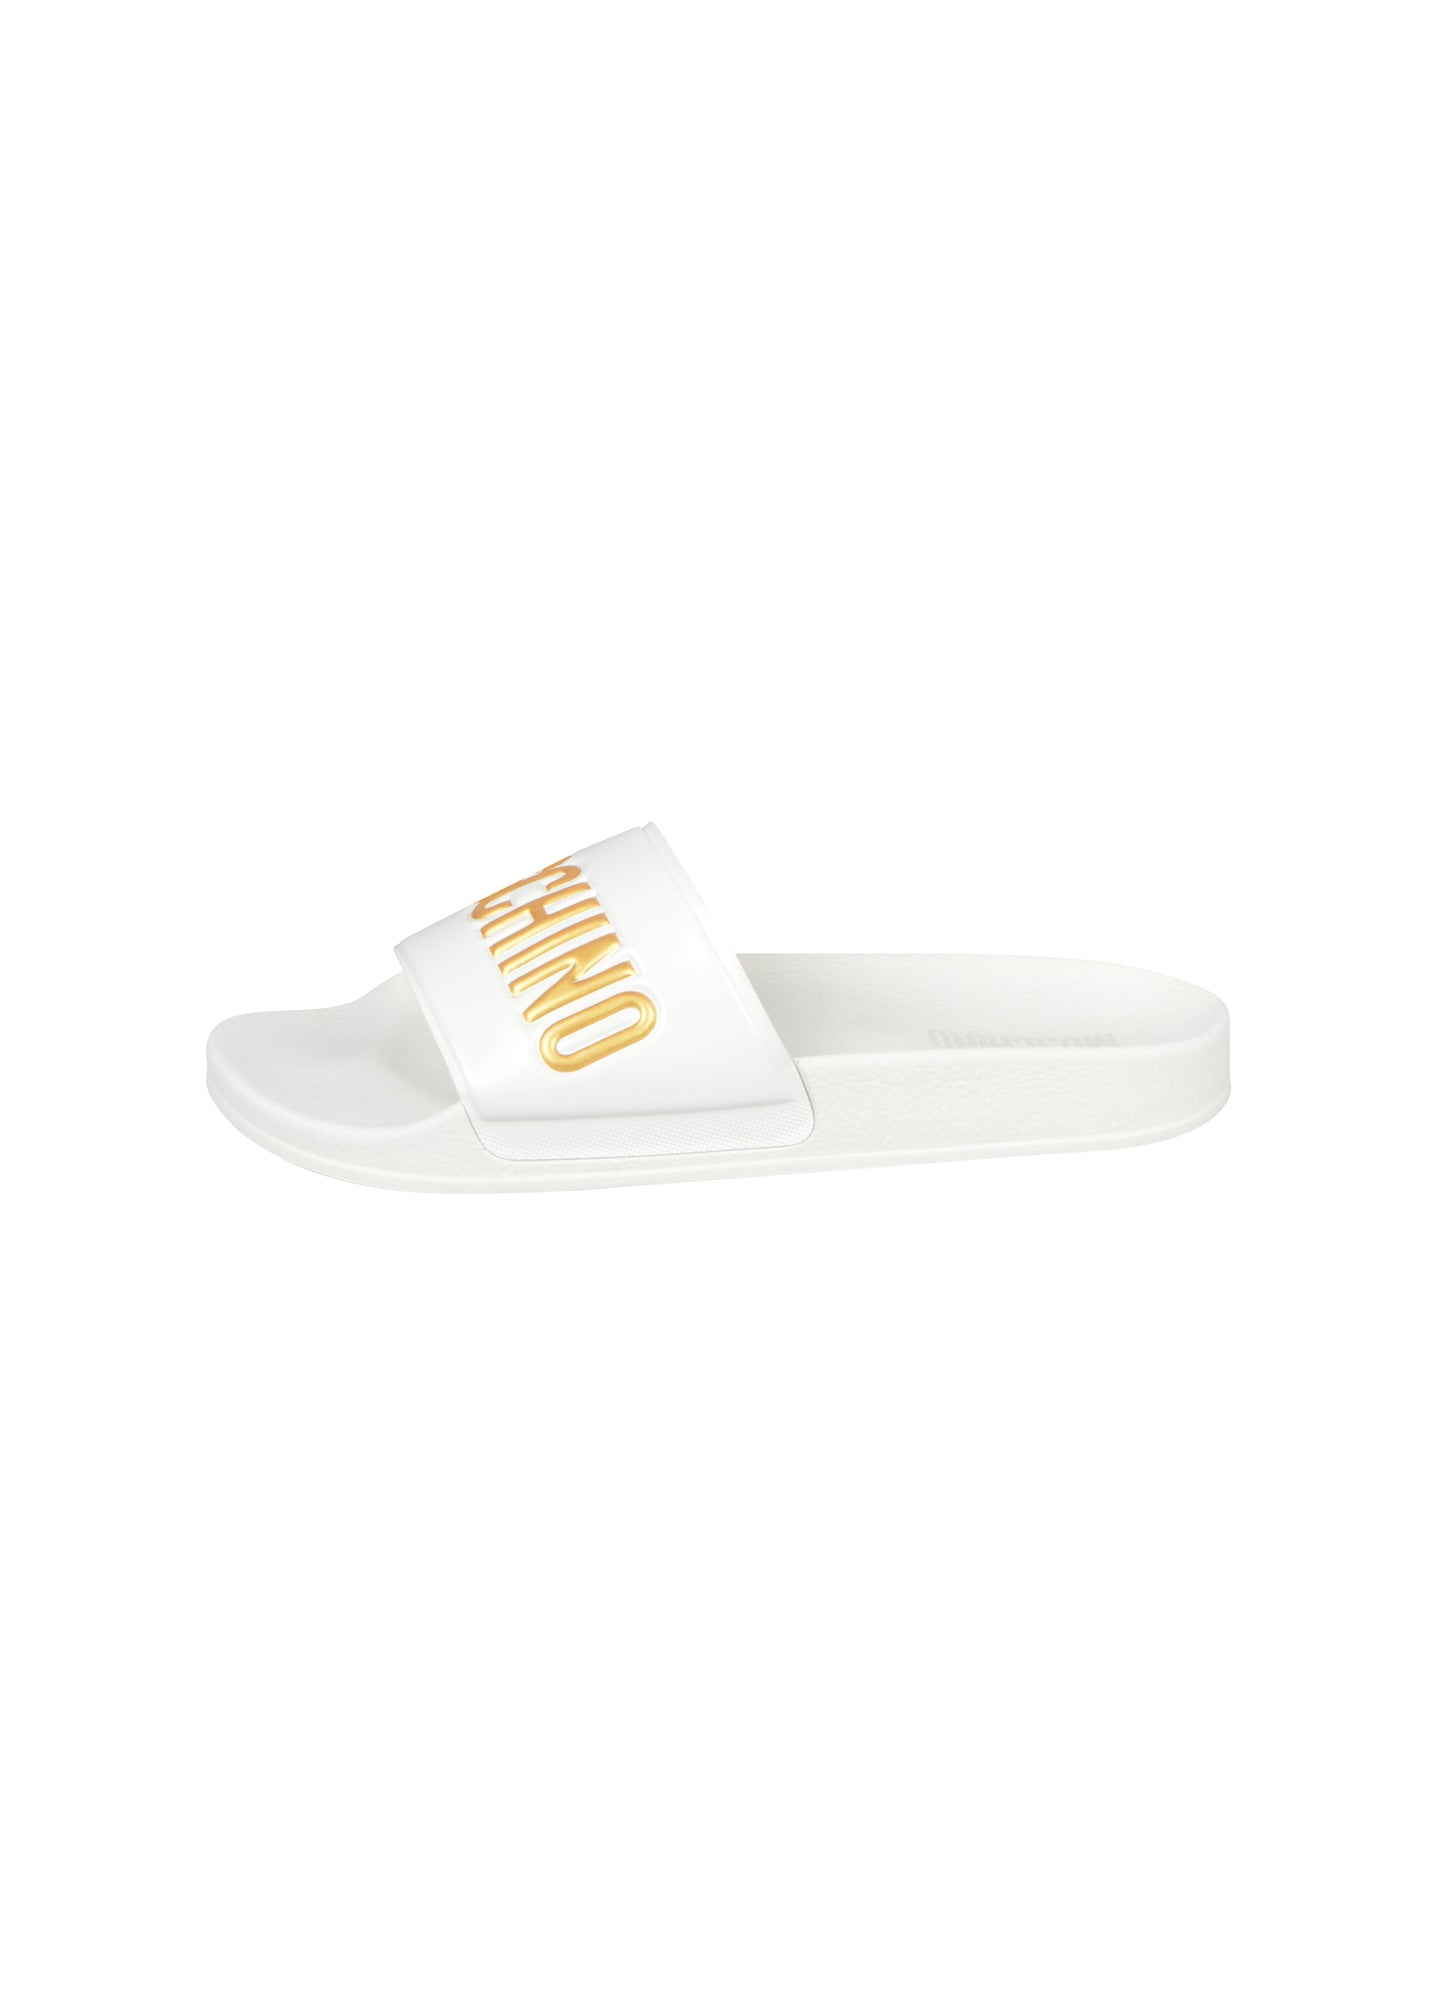 Moschino - Pool Sliders Gold Embossed Letters - 100049 - MB28022G1BG1G00A - White Gold